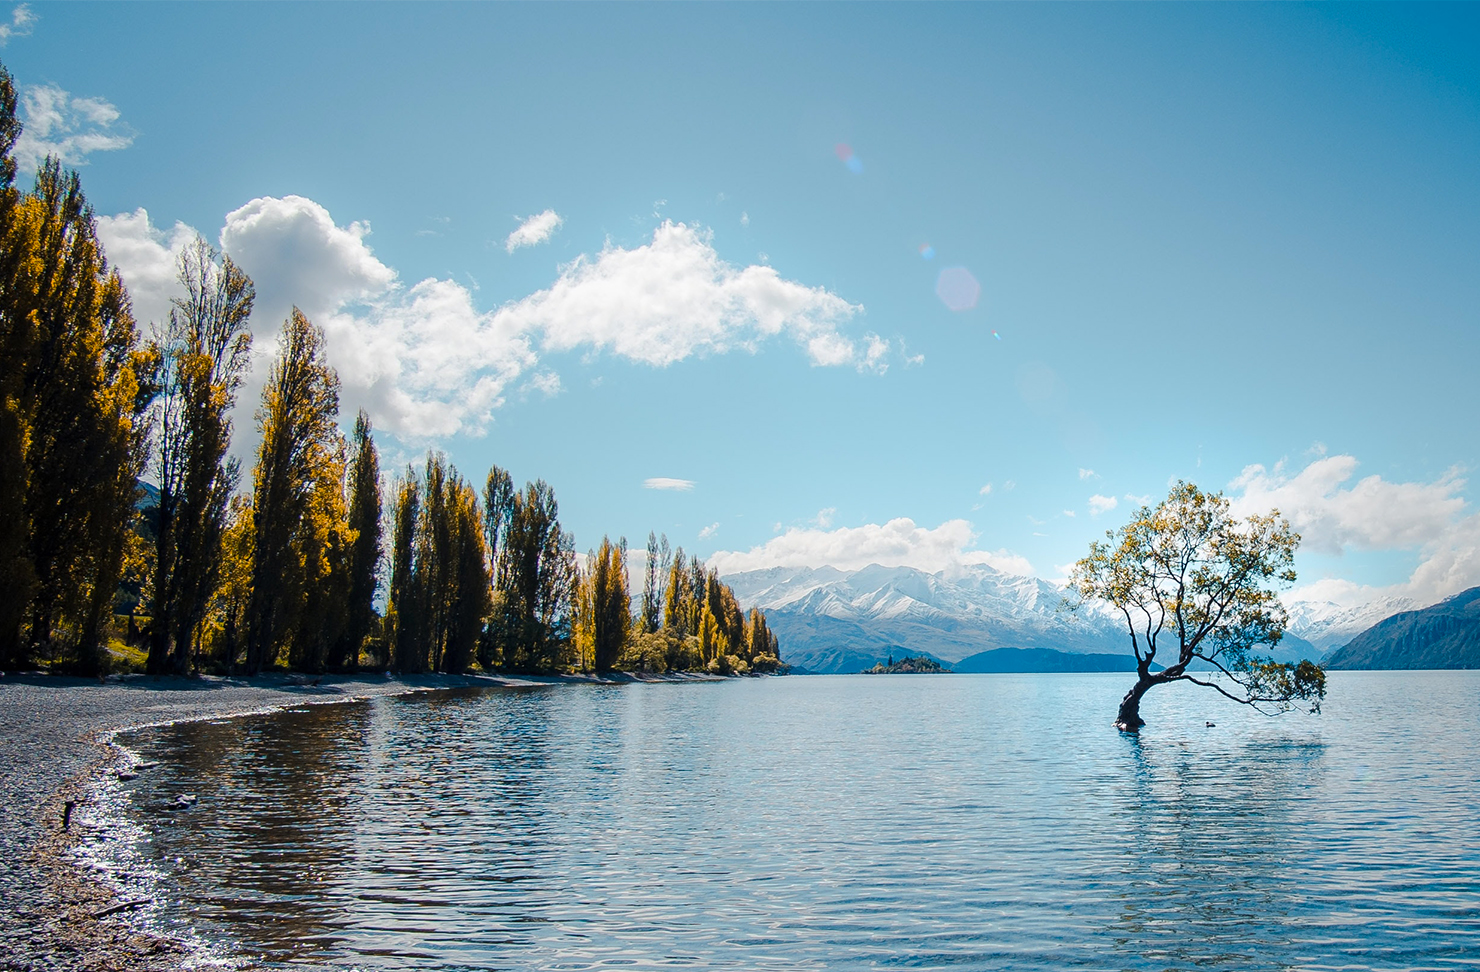 the wanaka late, fringed by trees has a blue sky in the background.